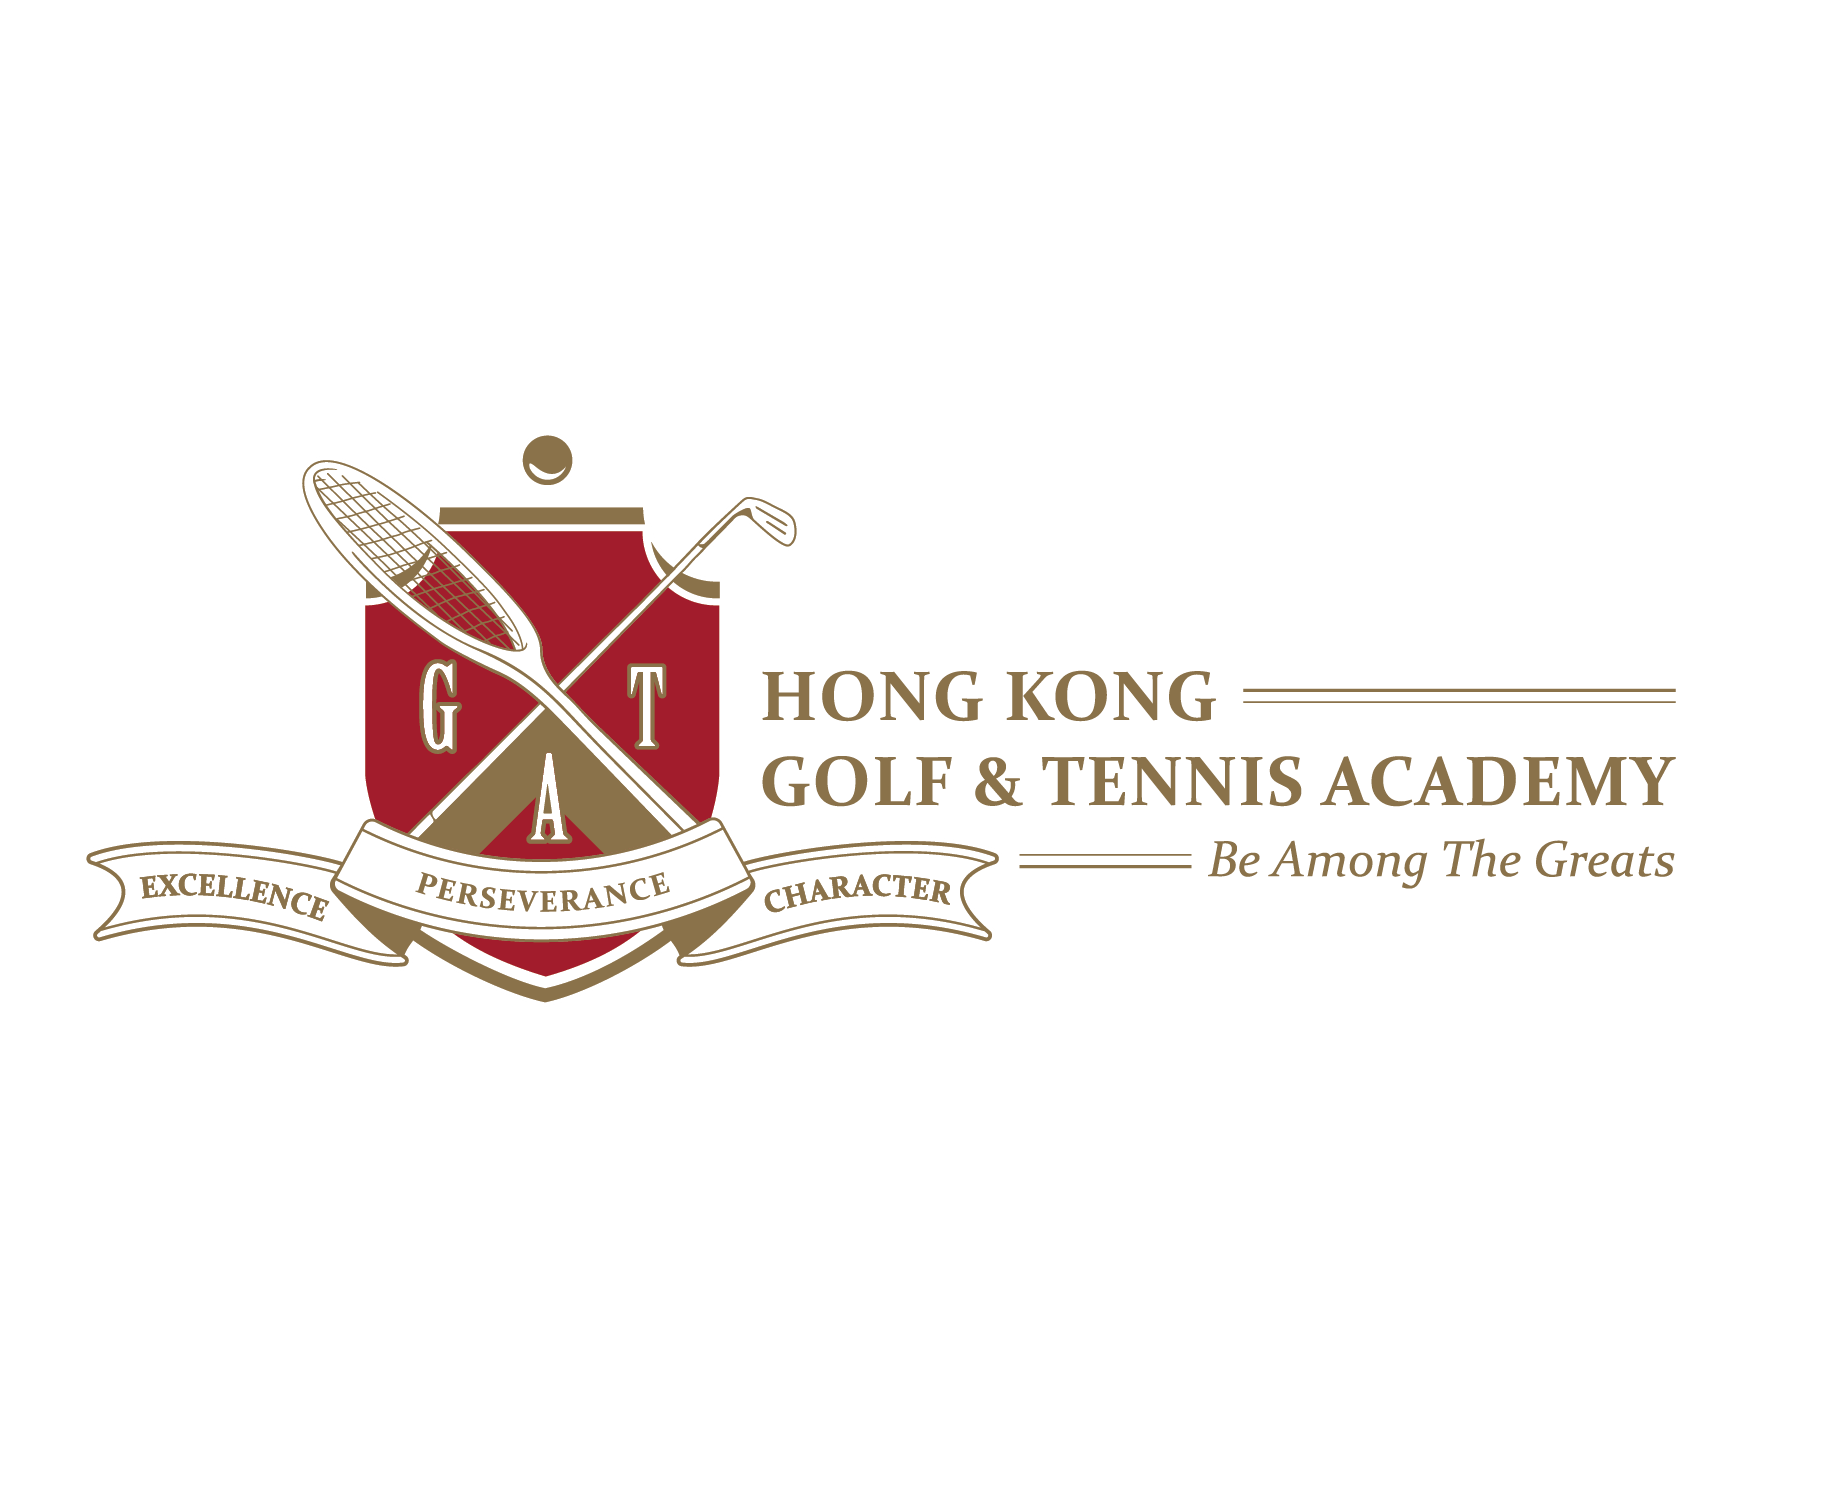 Certified Foreign Golf Coach from Hong Kong Golf & Tennis Academy